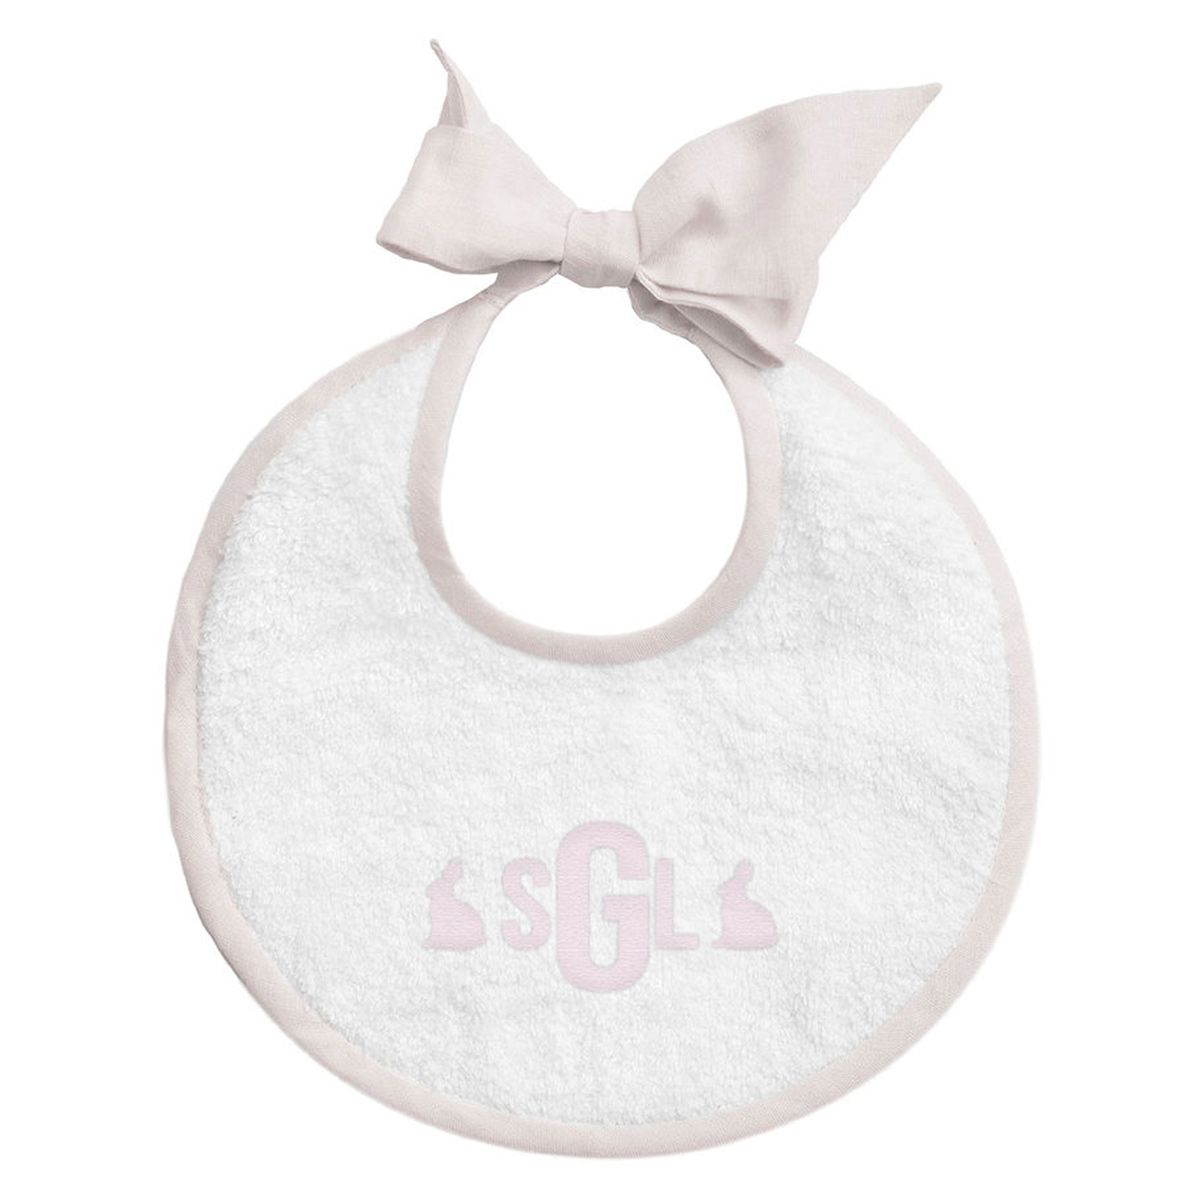 Louelle Personalized Easter Newborn Bib - Pink Gingham